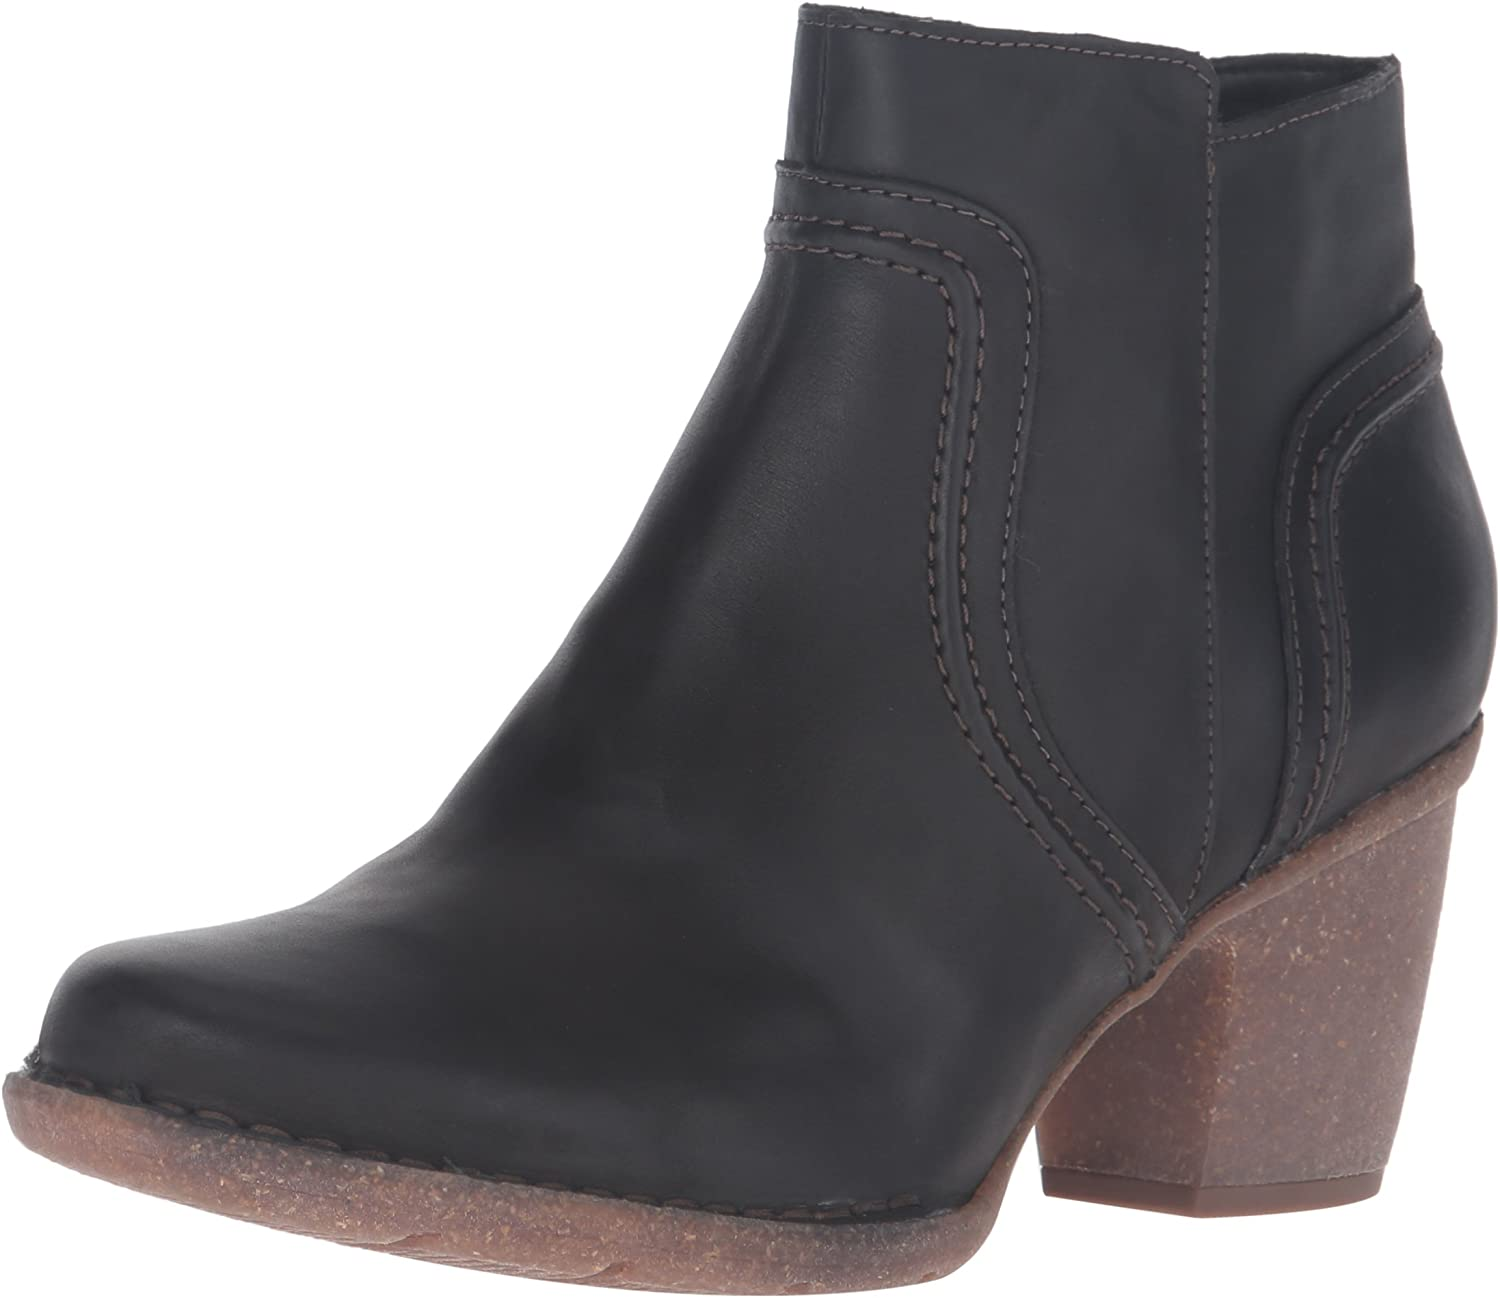 Clarks Women's Carleta Paris Ankle Boot